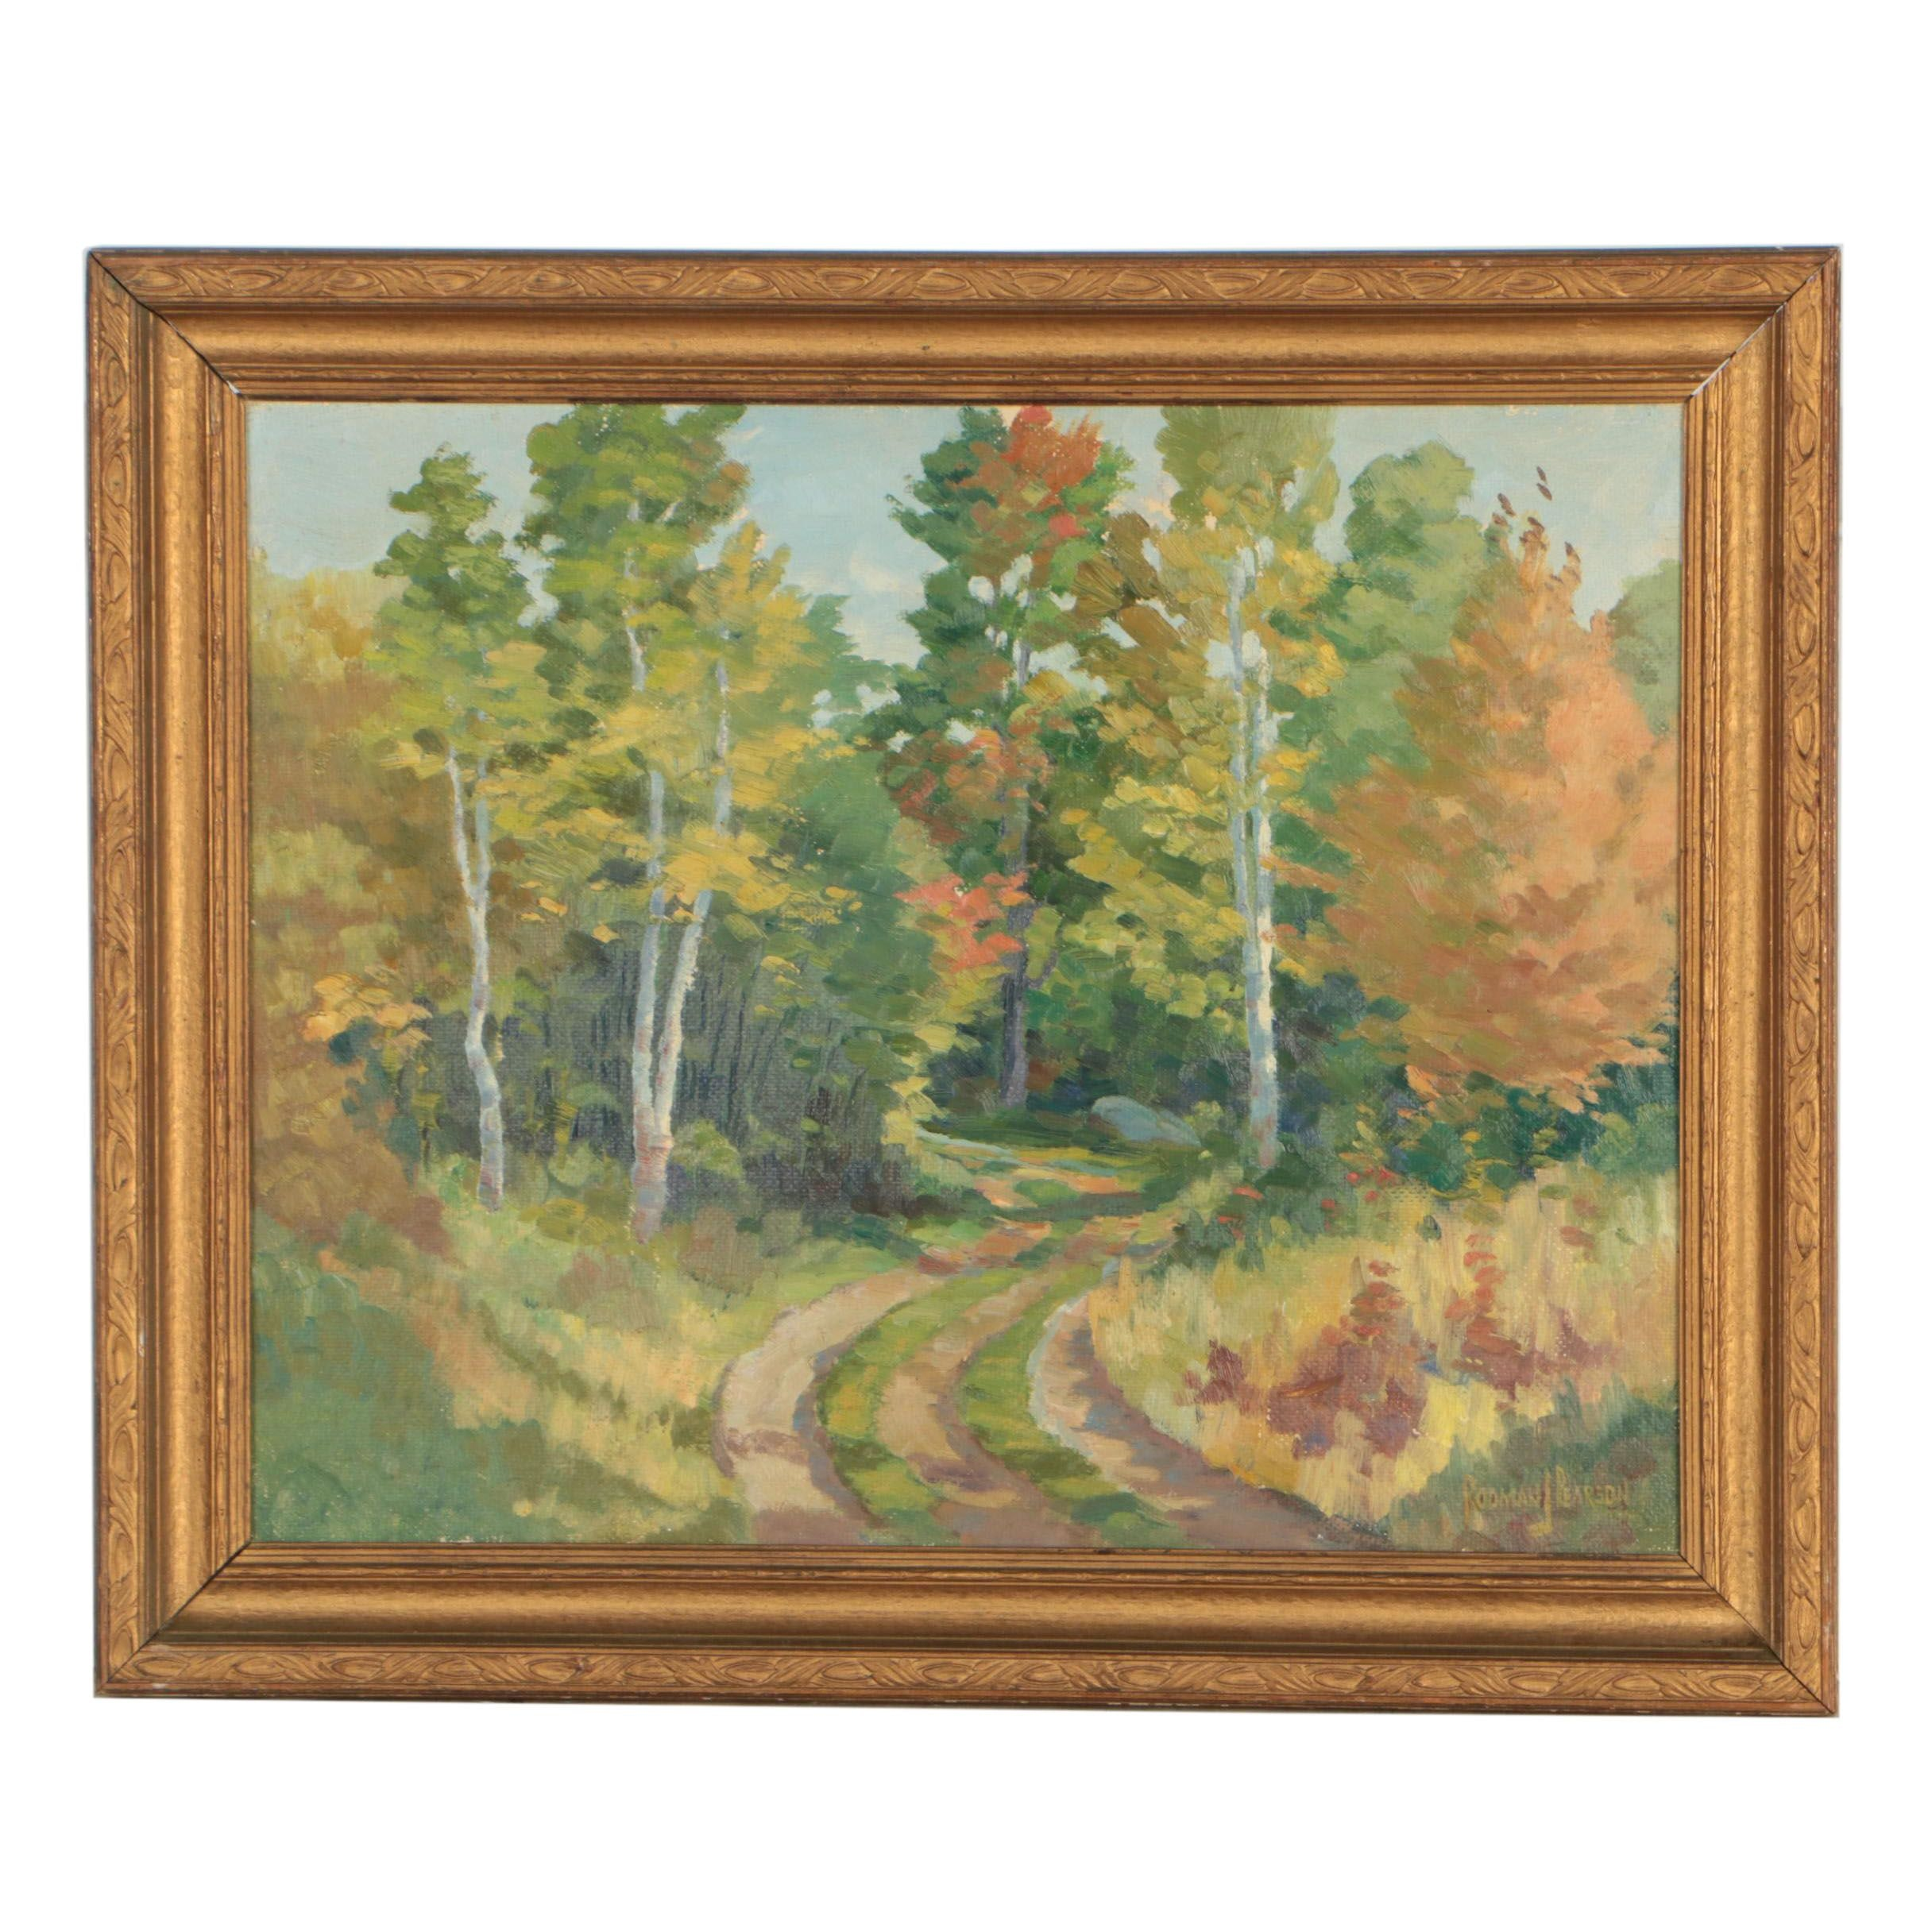 "Rodman J. Peterson 1938 Landscape Oil Painting ""Old Mood Road"""